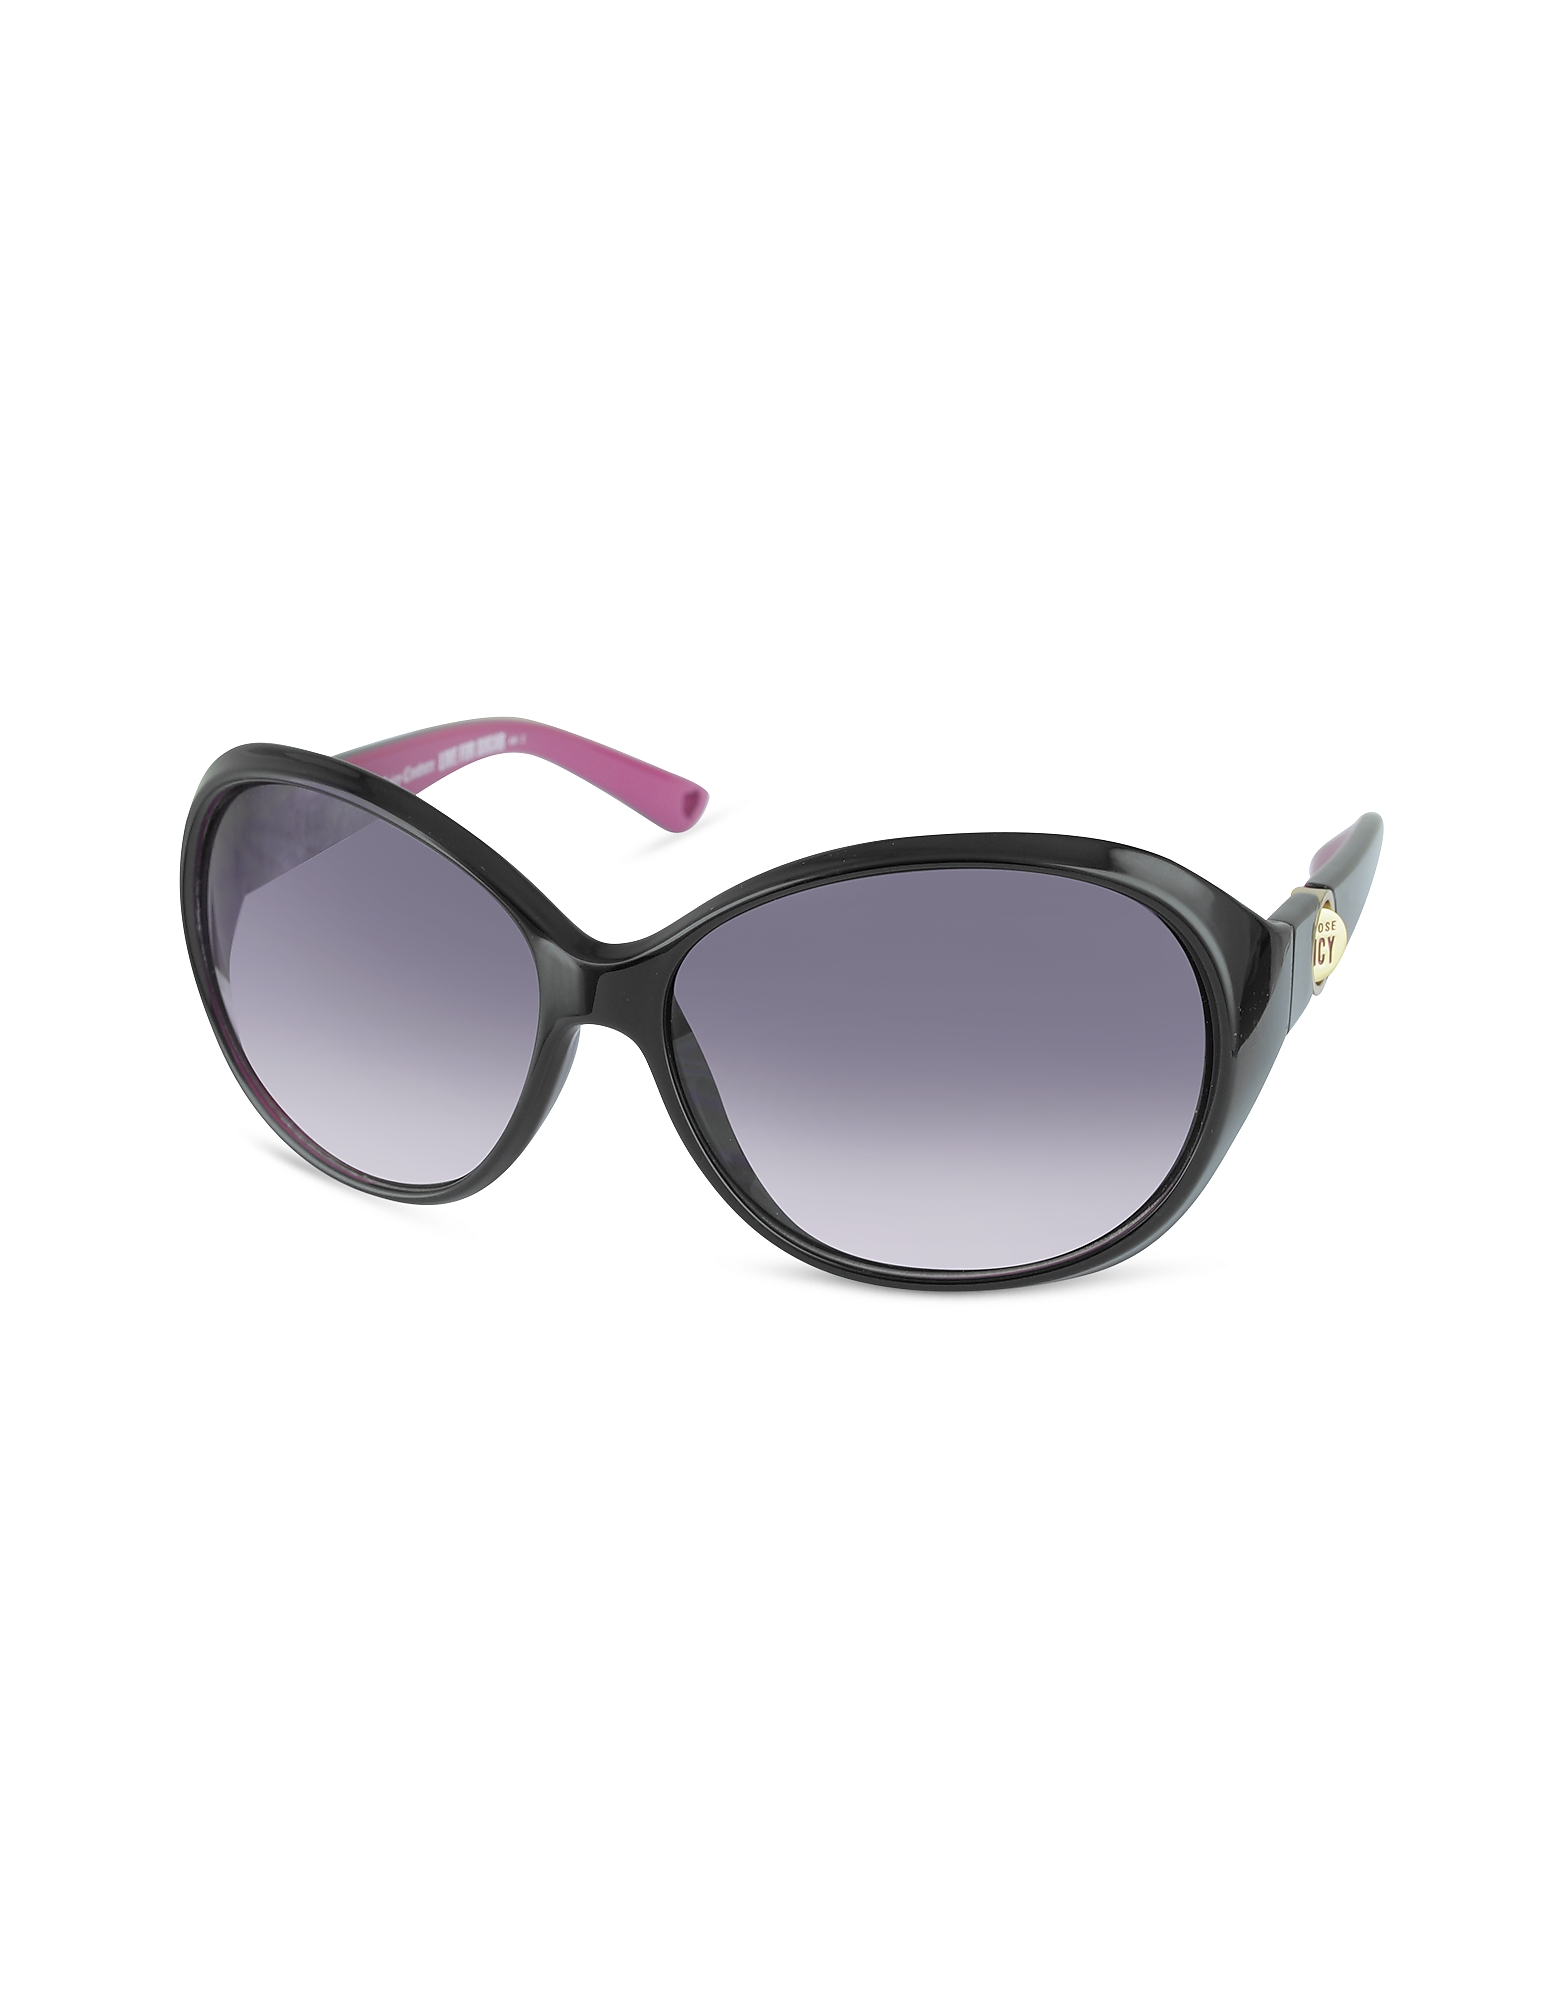 Juicy Couture Sunglasses, Quaint - Round Sunglasses